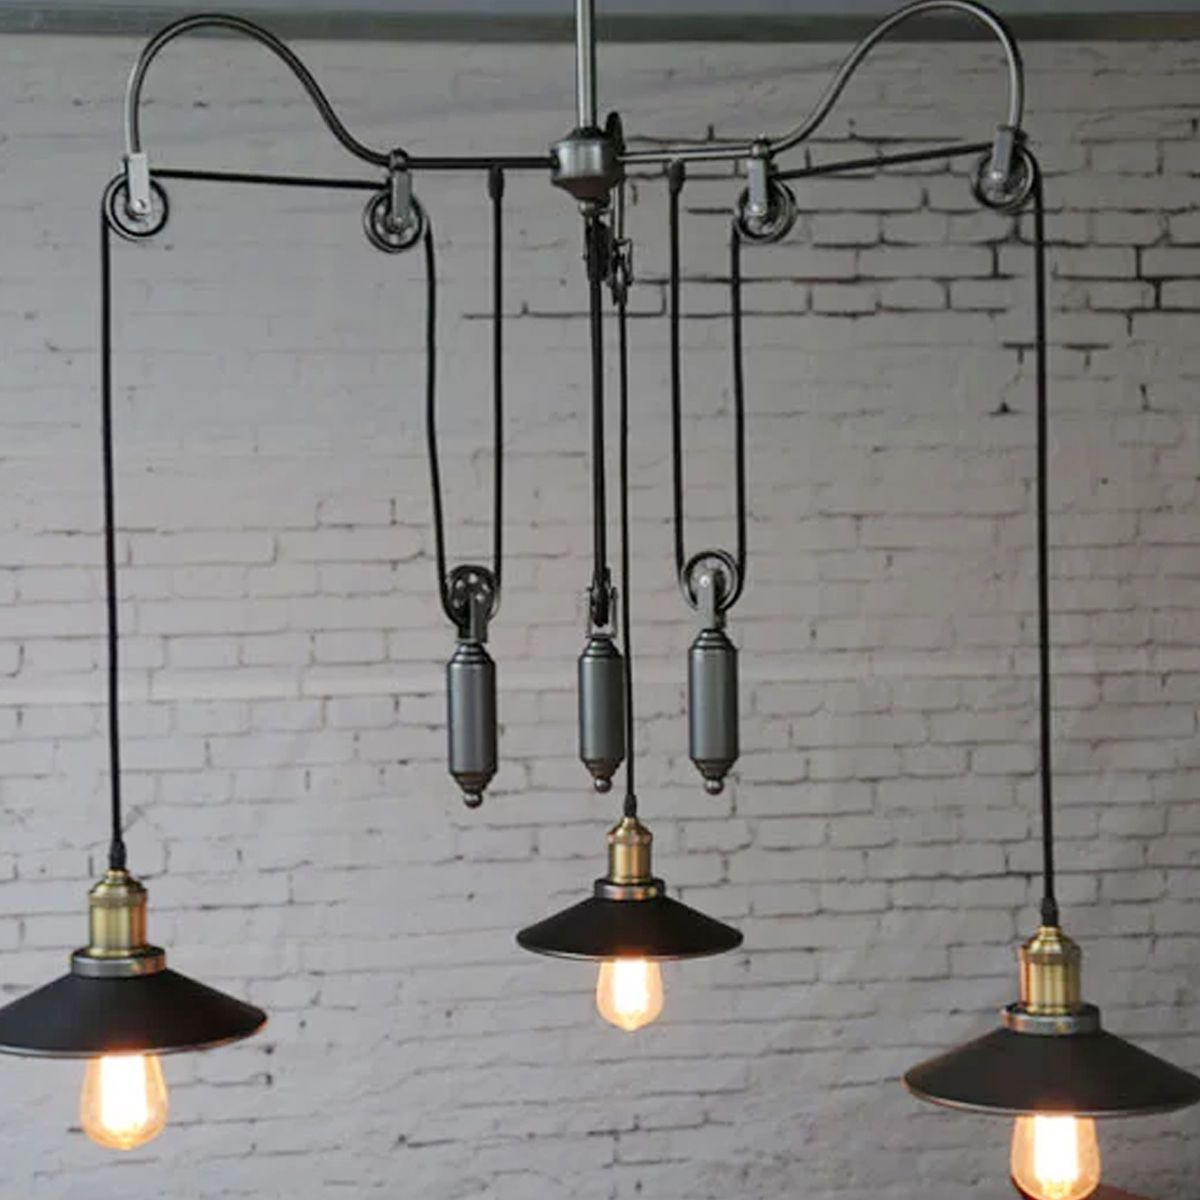 Pin by calan on decorative lighting pinterest pendant lighting